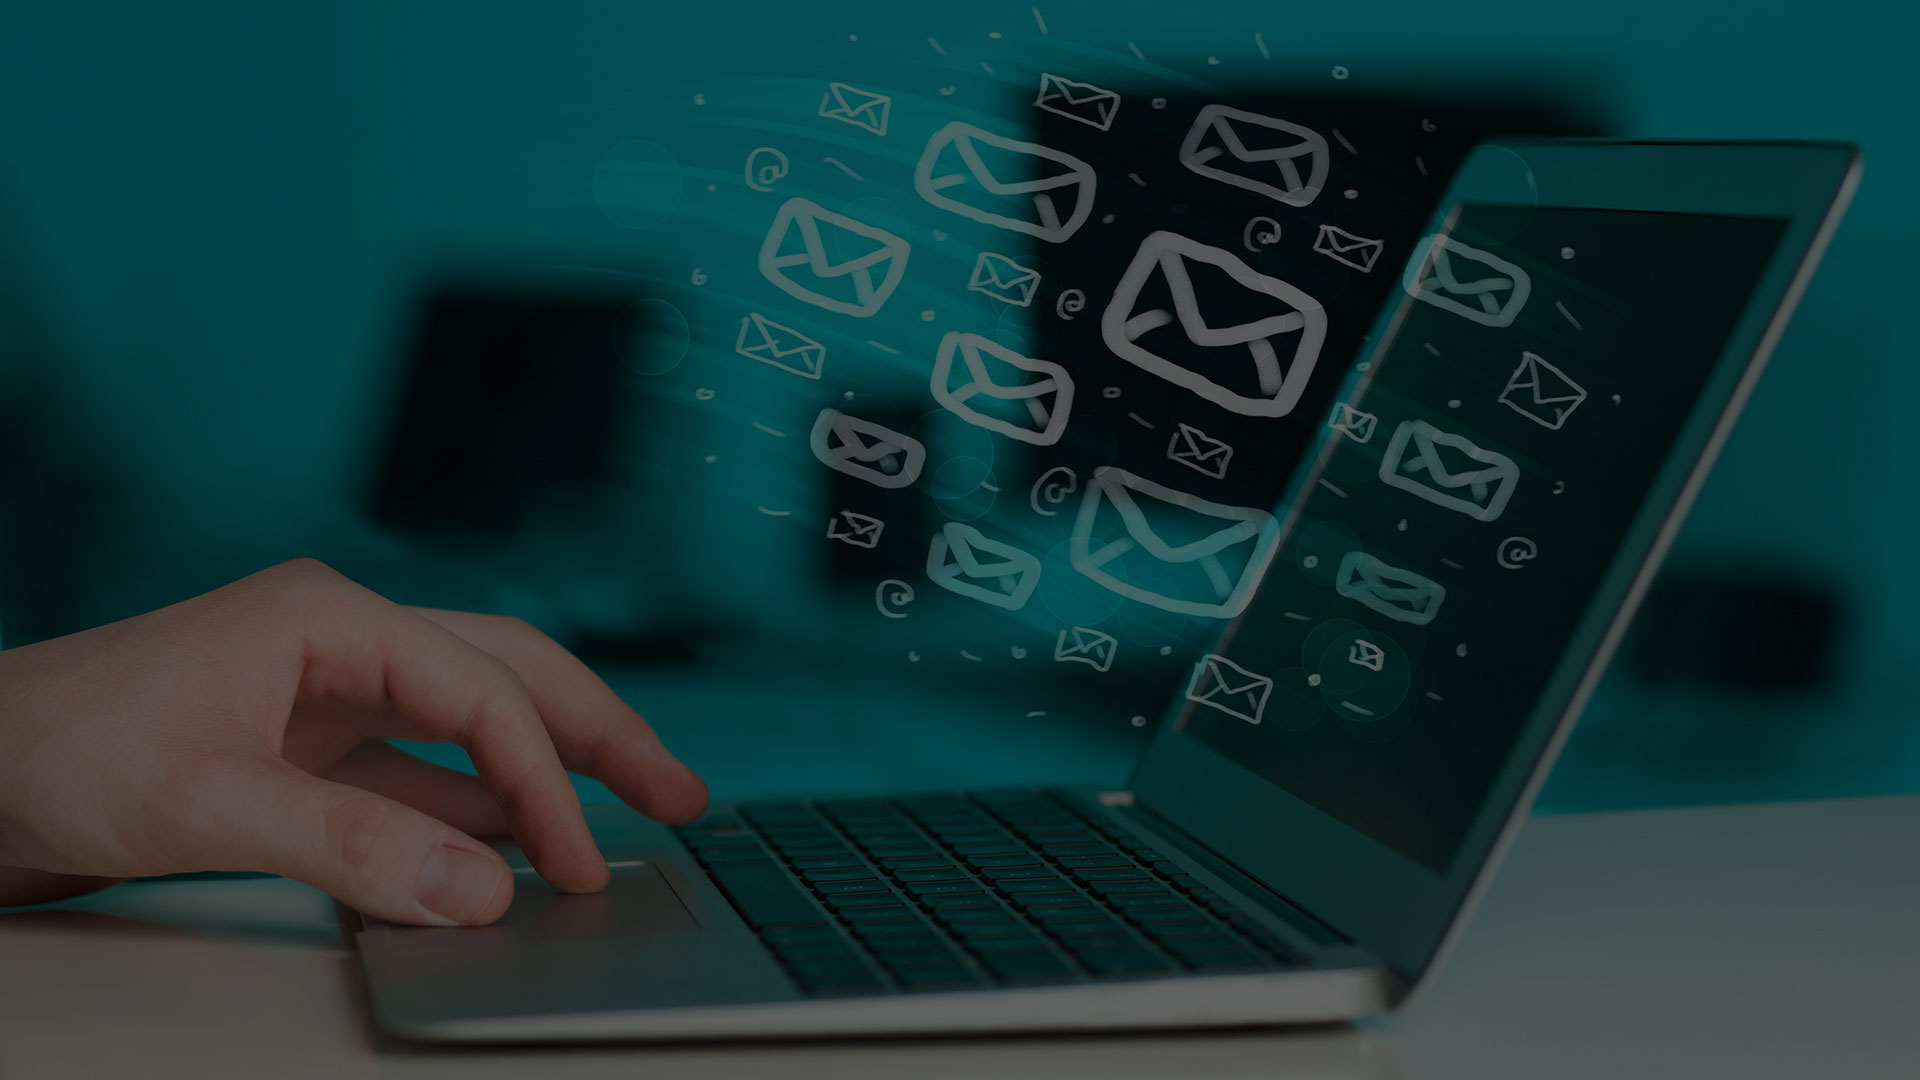 EMAIL MARKETING - When you decide to run your own business, you may face a flood of complicated issues prior to creating advertising campaigns. Amongst that mass of marketing options, email marketing can help turn things upside down for the better.